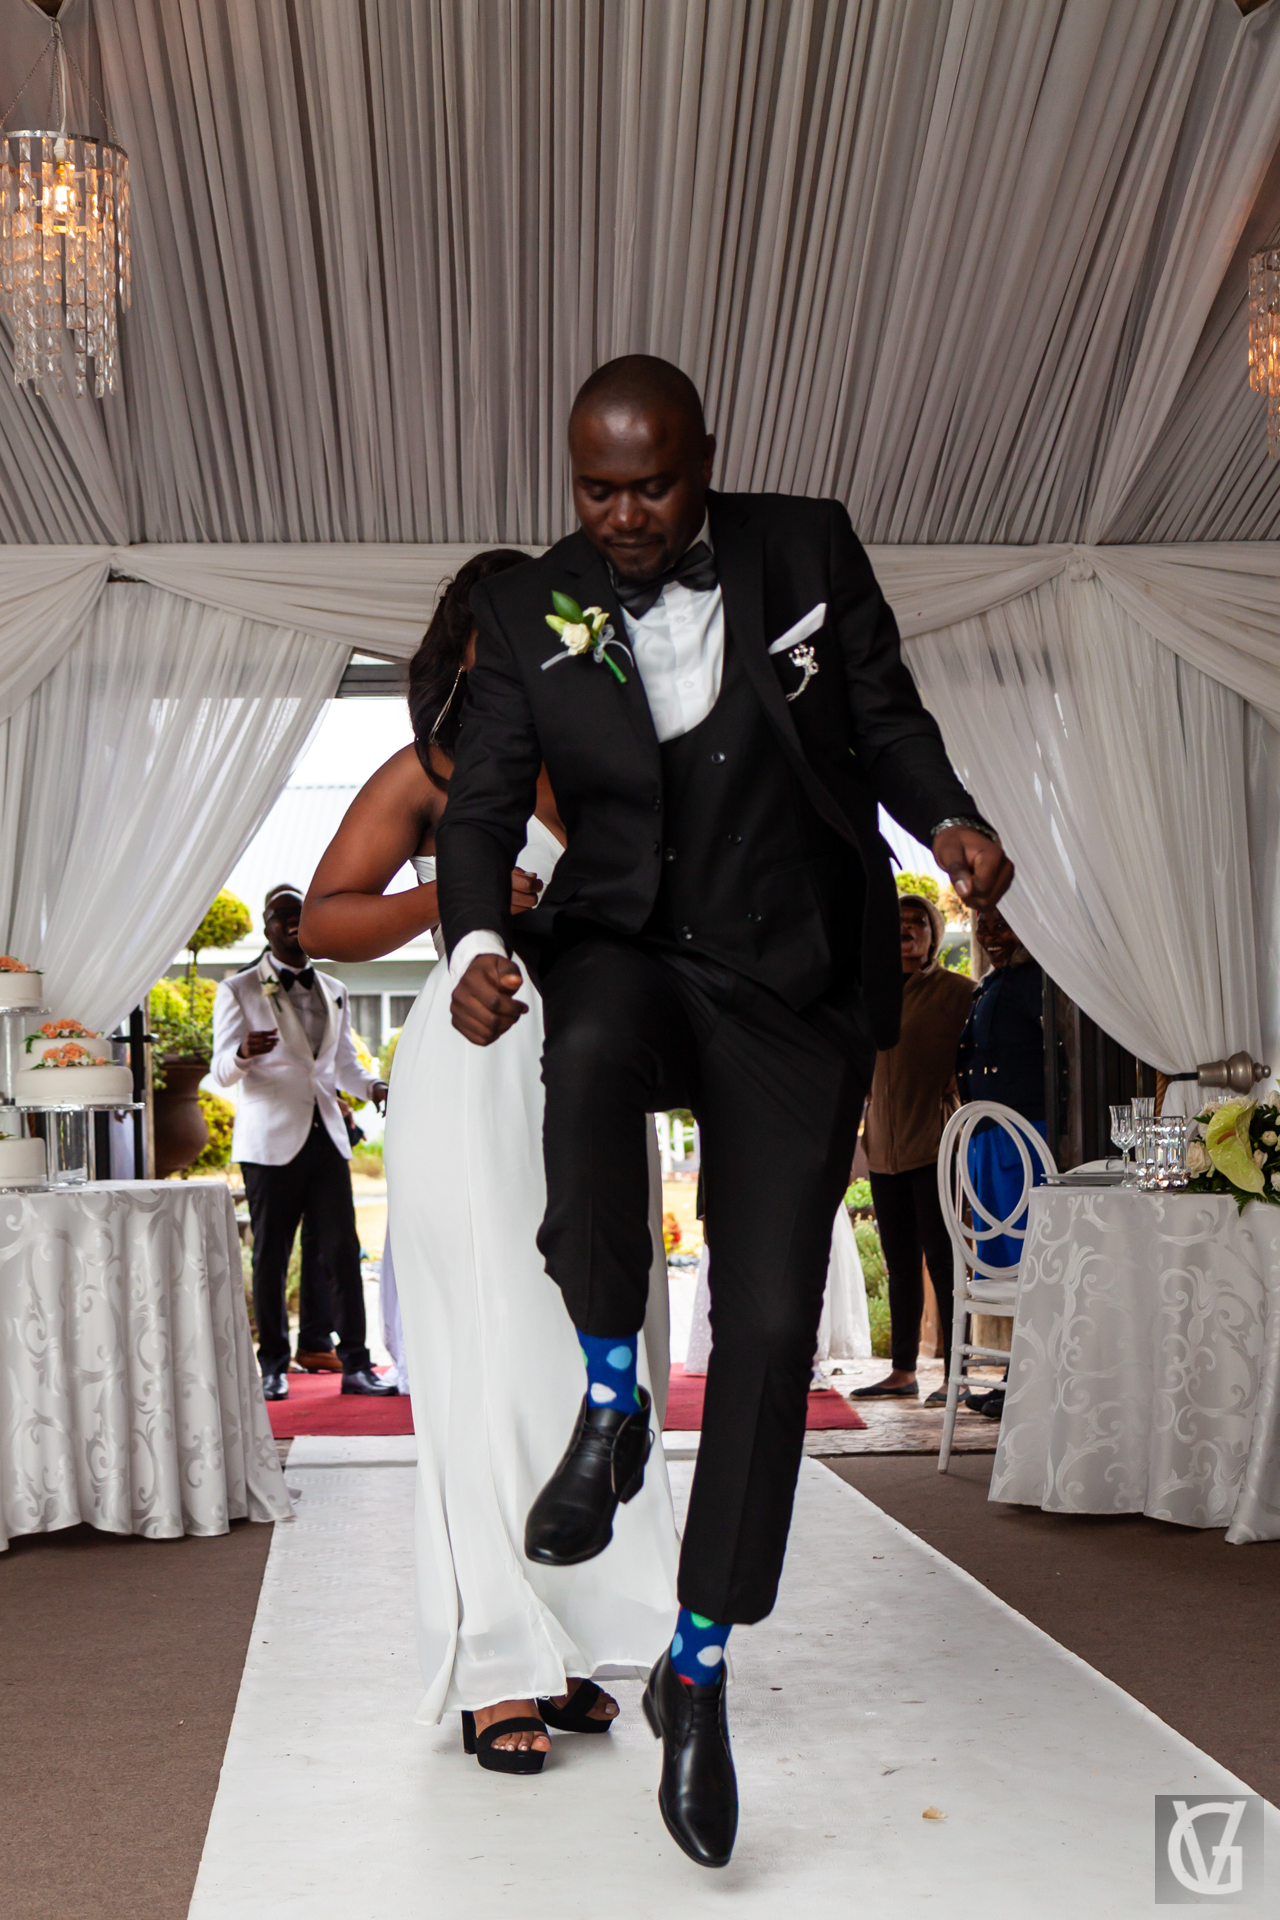 A man jumping and dancing while entering a wedding reception